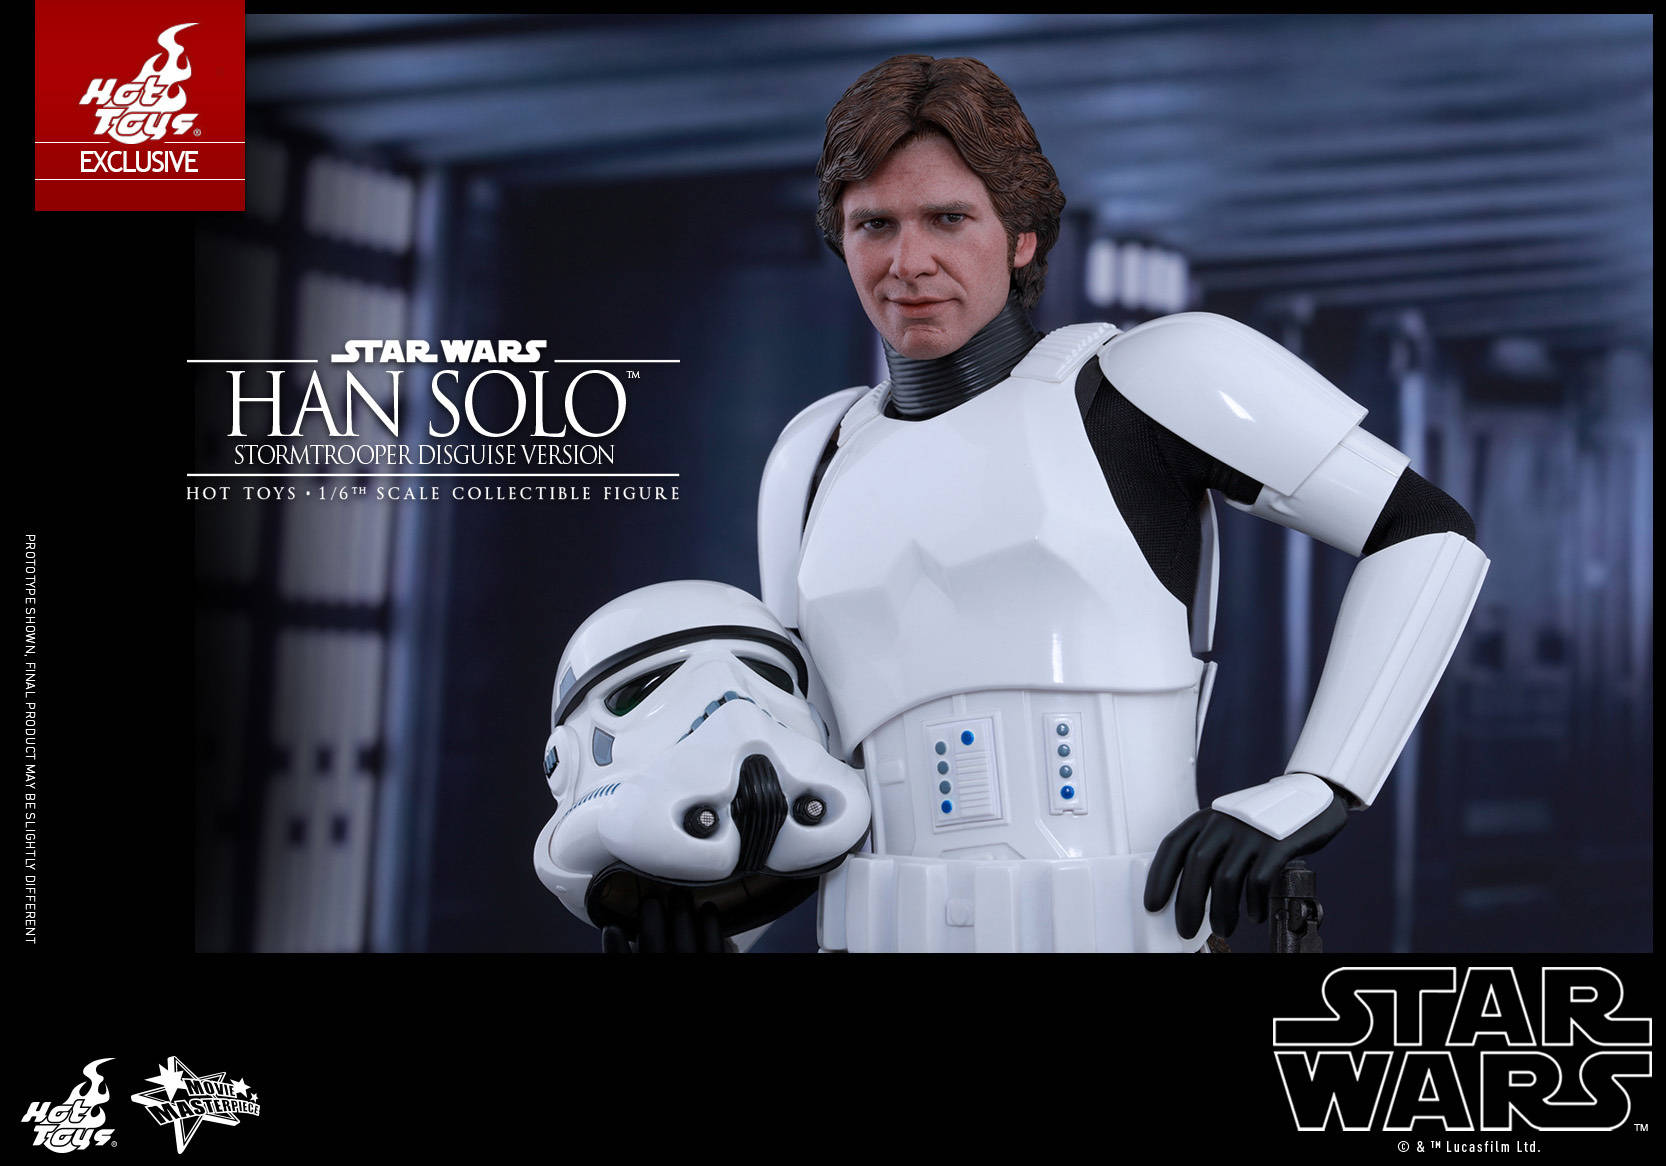 Hot-Toys---Star-Wars---Han-Solo-(Stormtrooper-Disguise-Version)-Collectible-Figure PR14